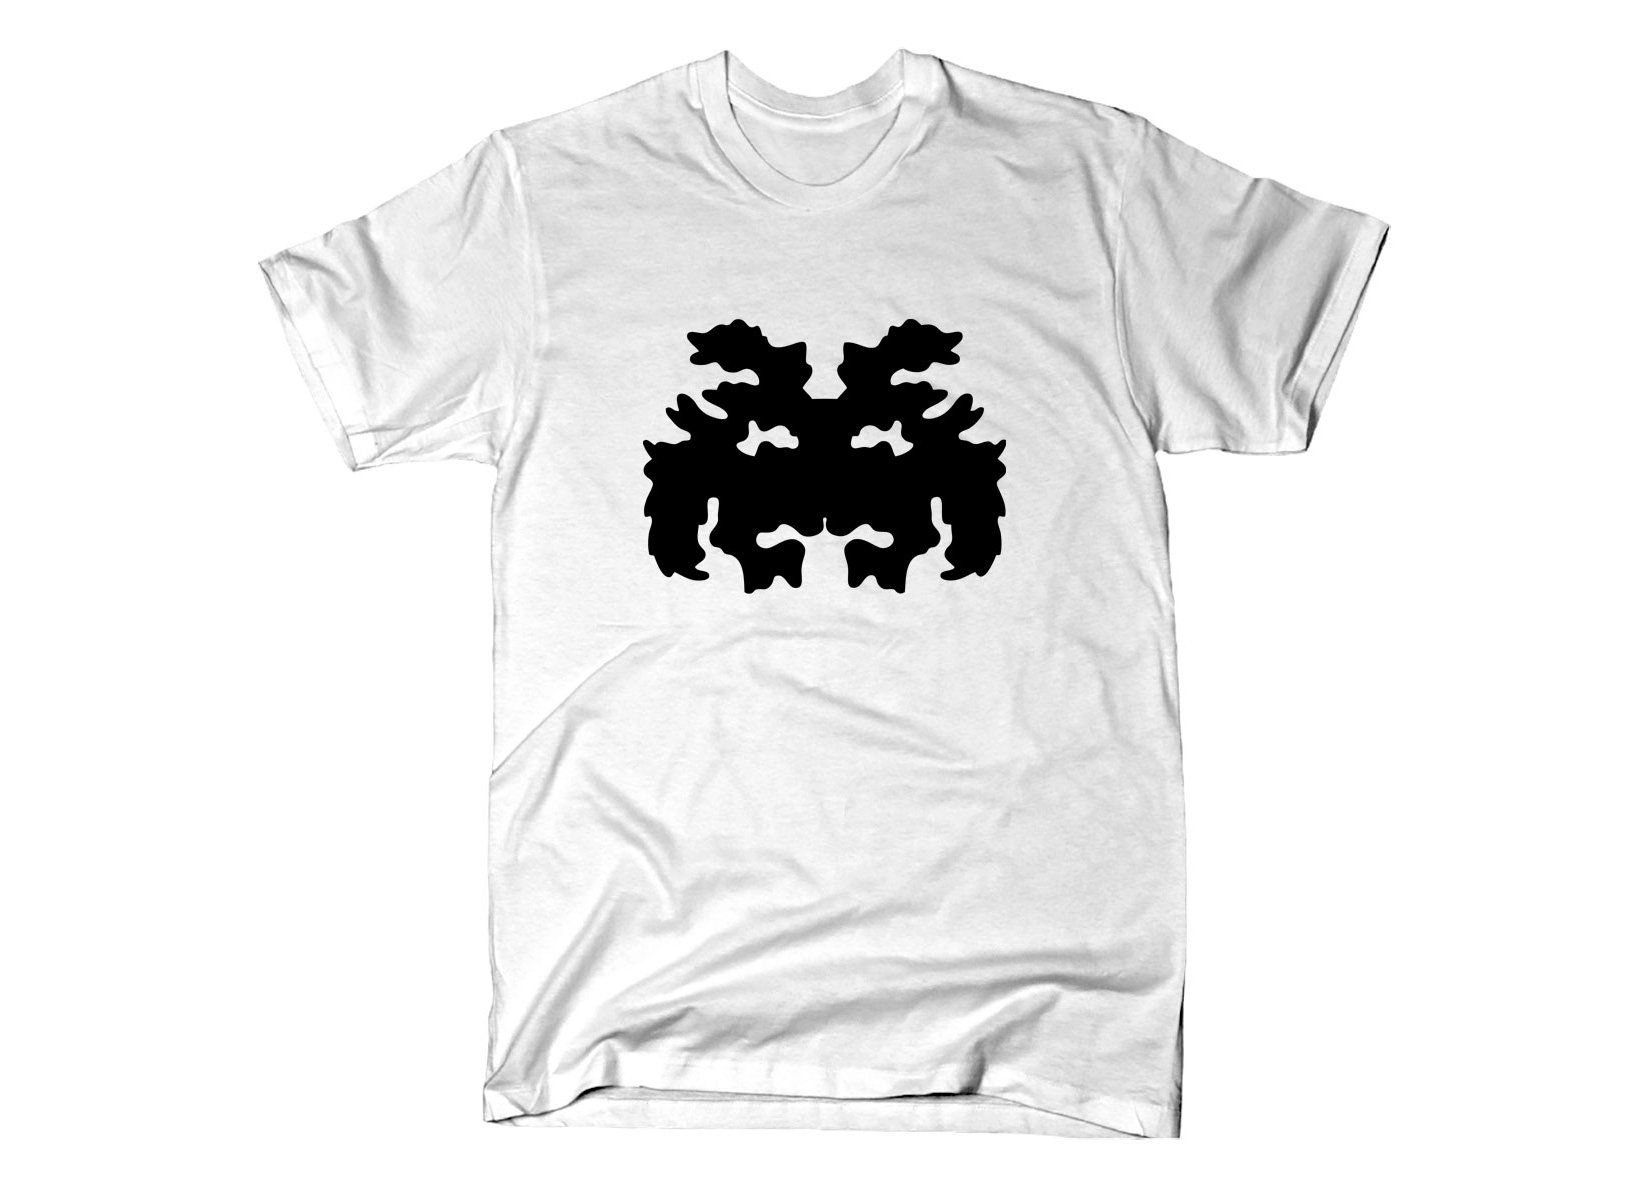 Rorschach Invader on Mens T-Shirt